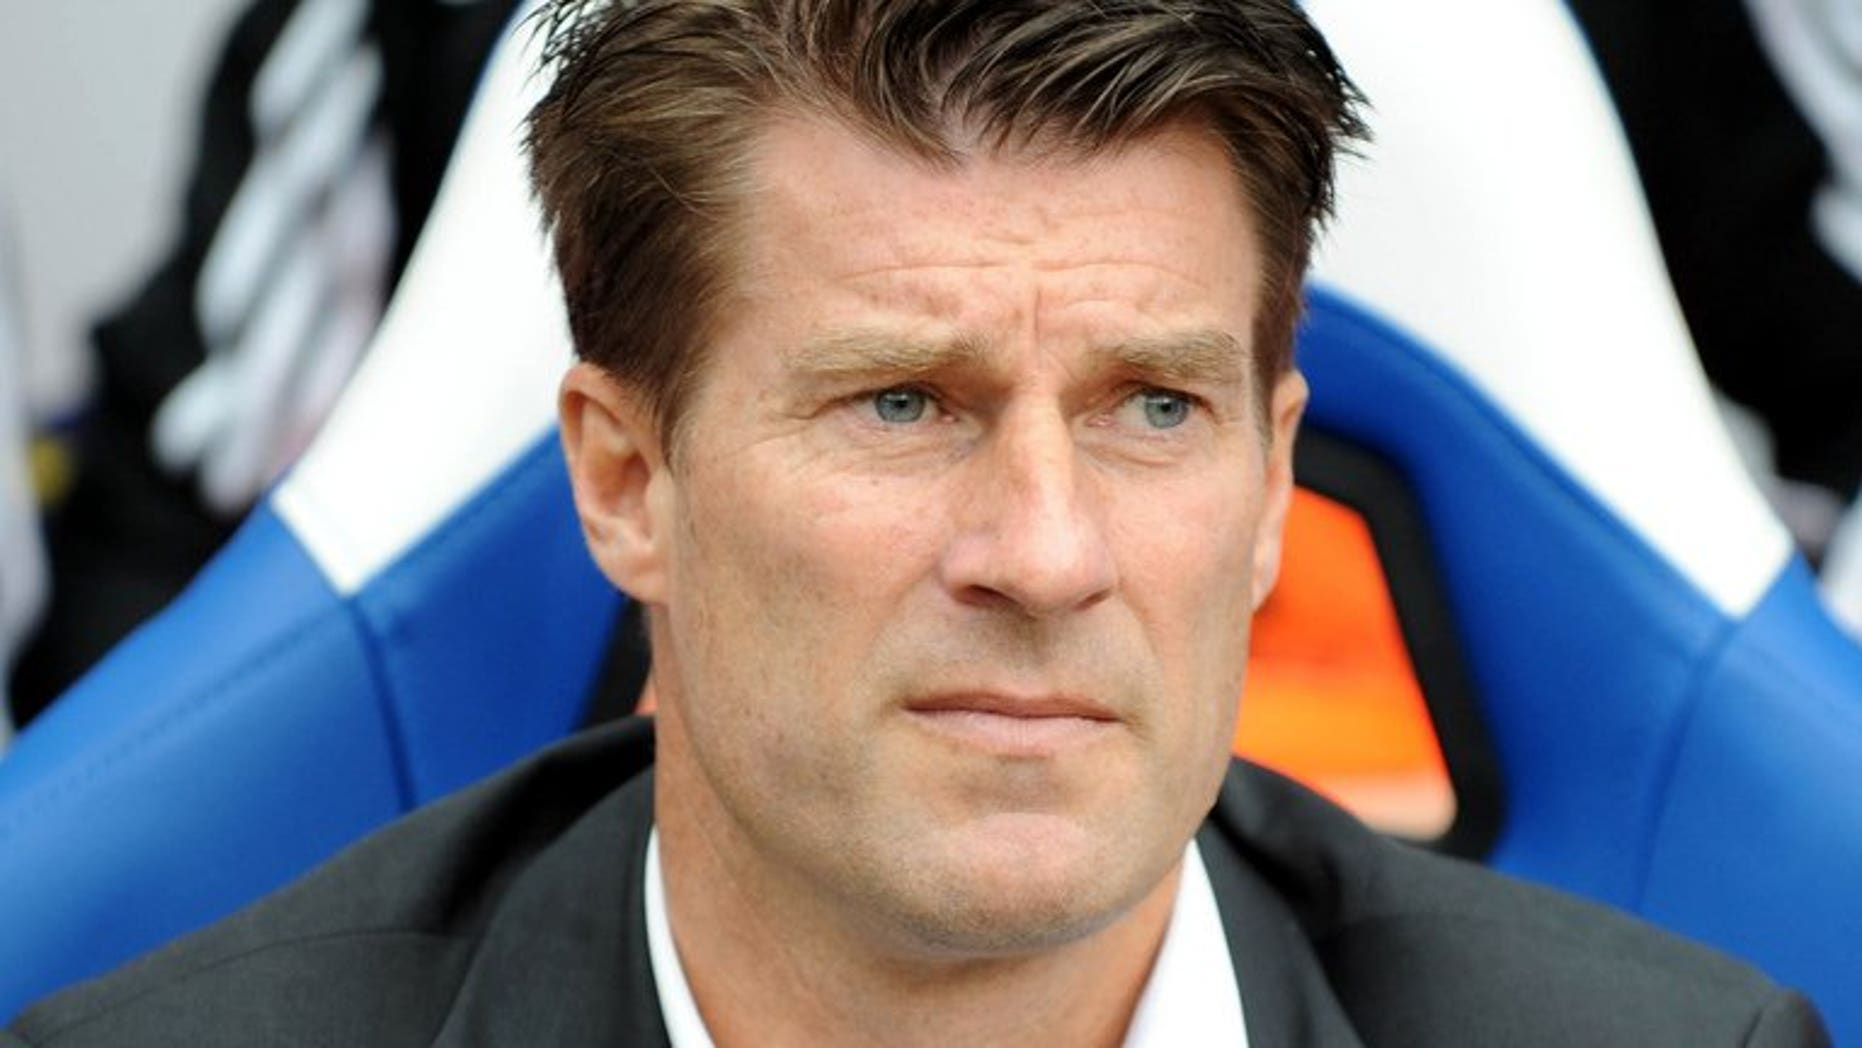 Swansea City's Danish manager Michael Laudrup watches during the English Premier League football match between Crystal Palace and Swansea City at Selhurst Park in south London on September 22, 2013.